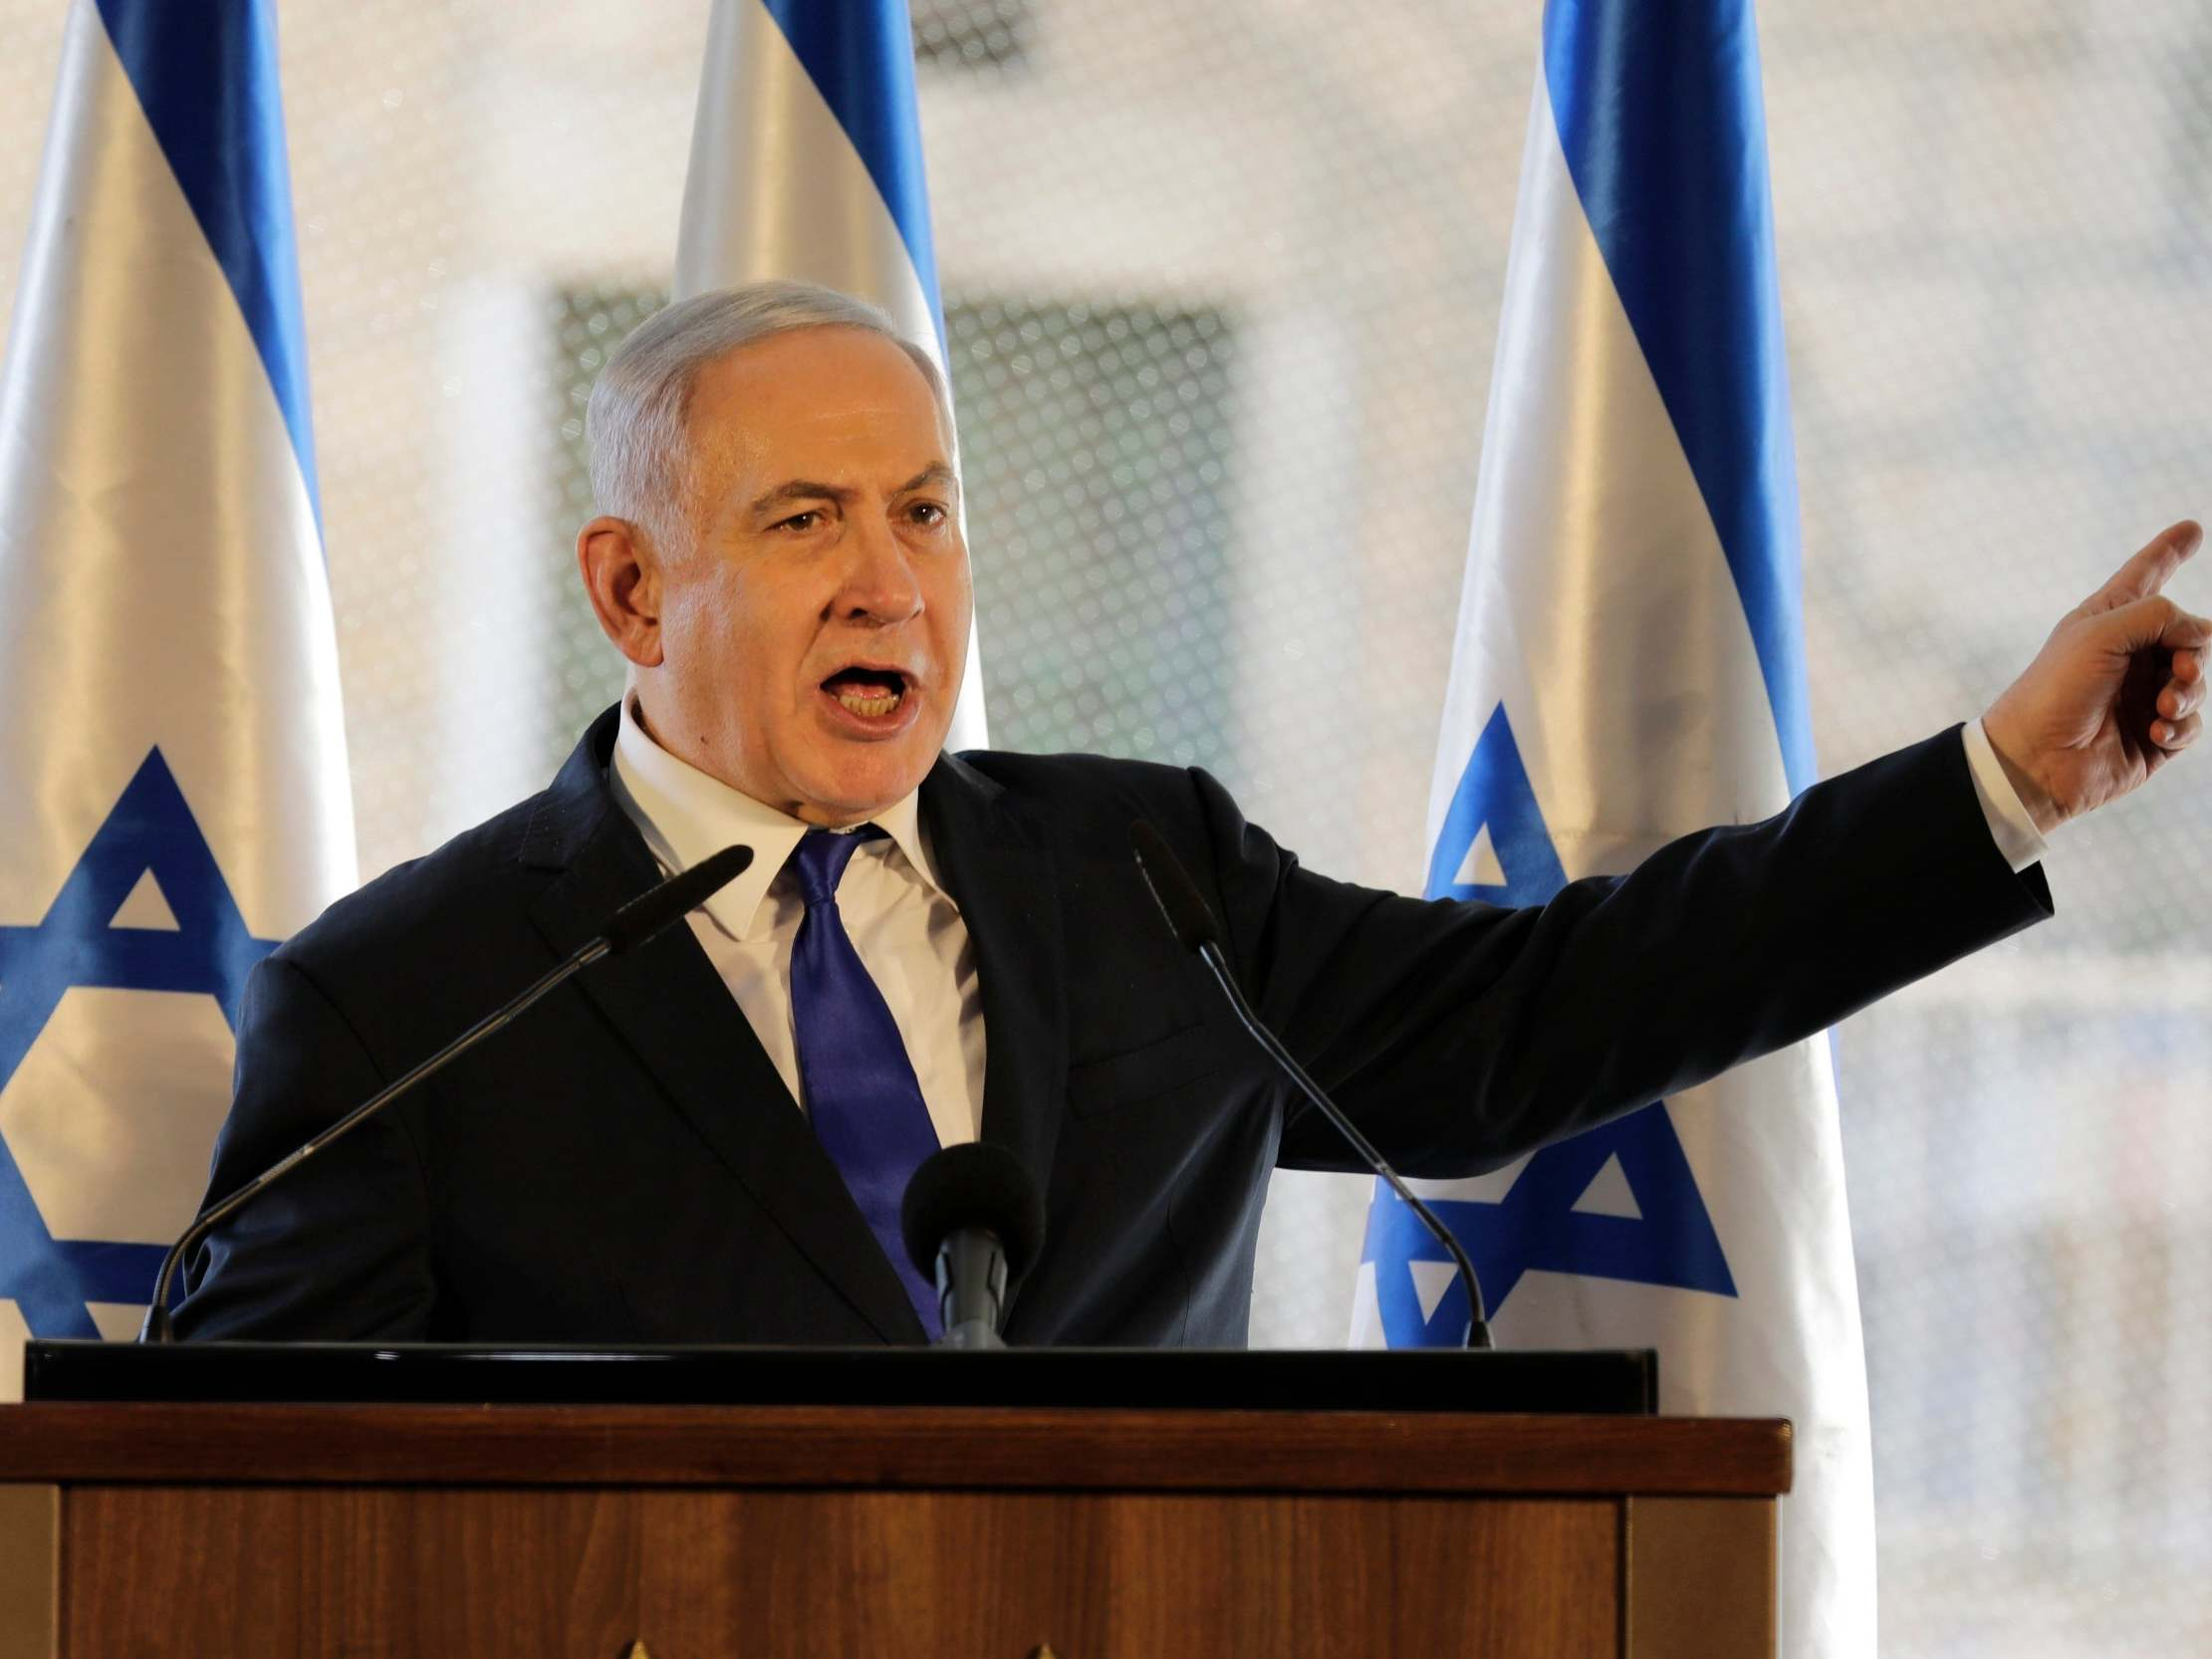 When you're a black Jewish American, it's hard to ignore what Netanyahu is doing in Israel